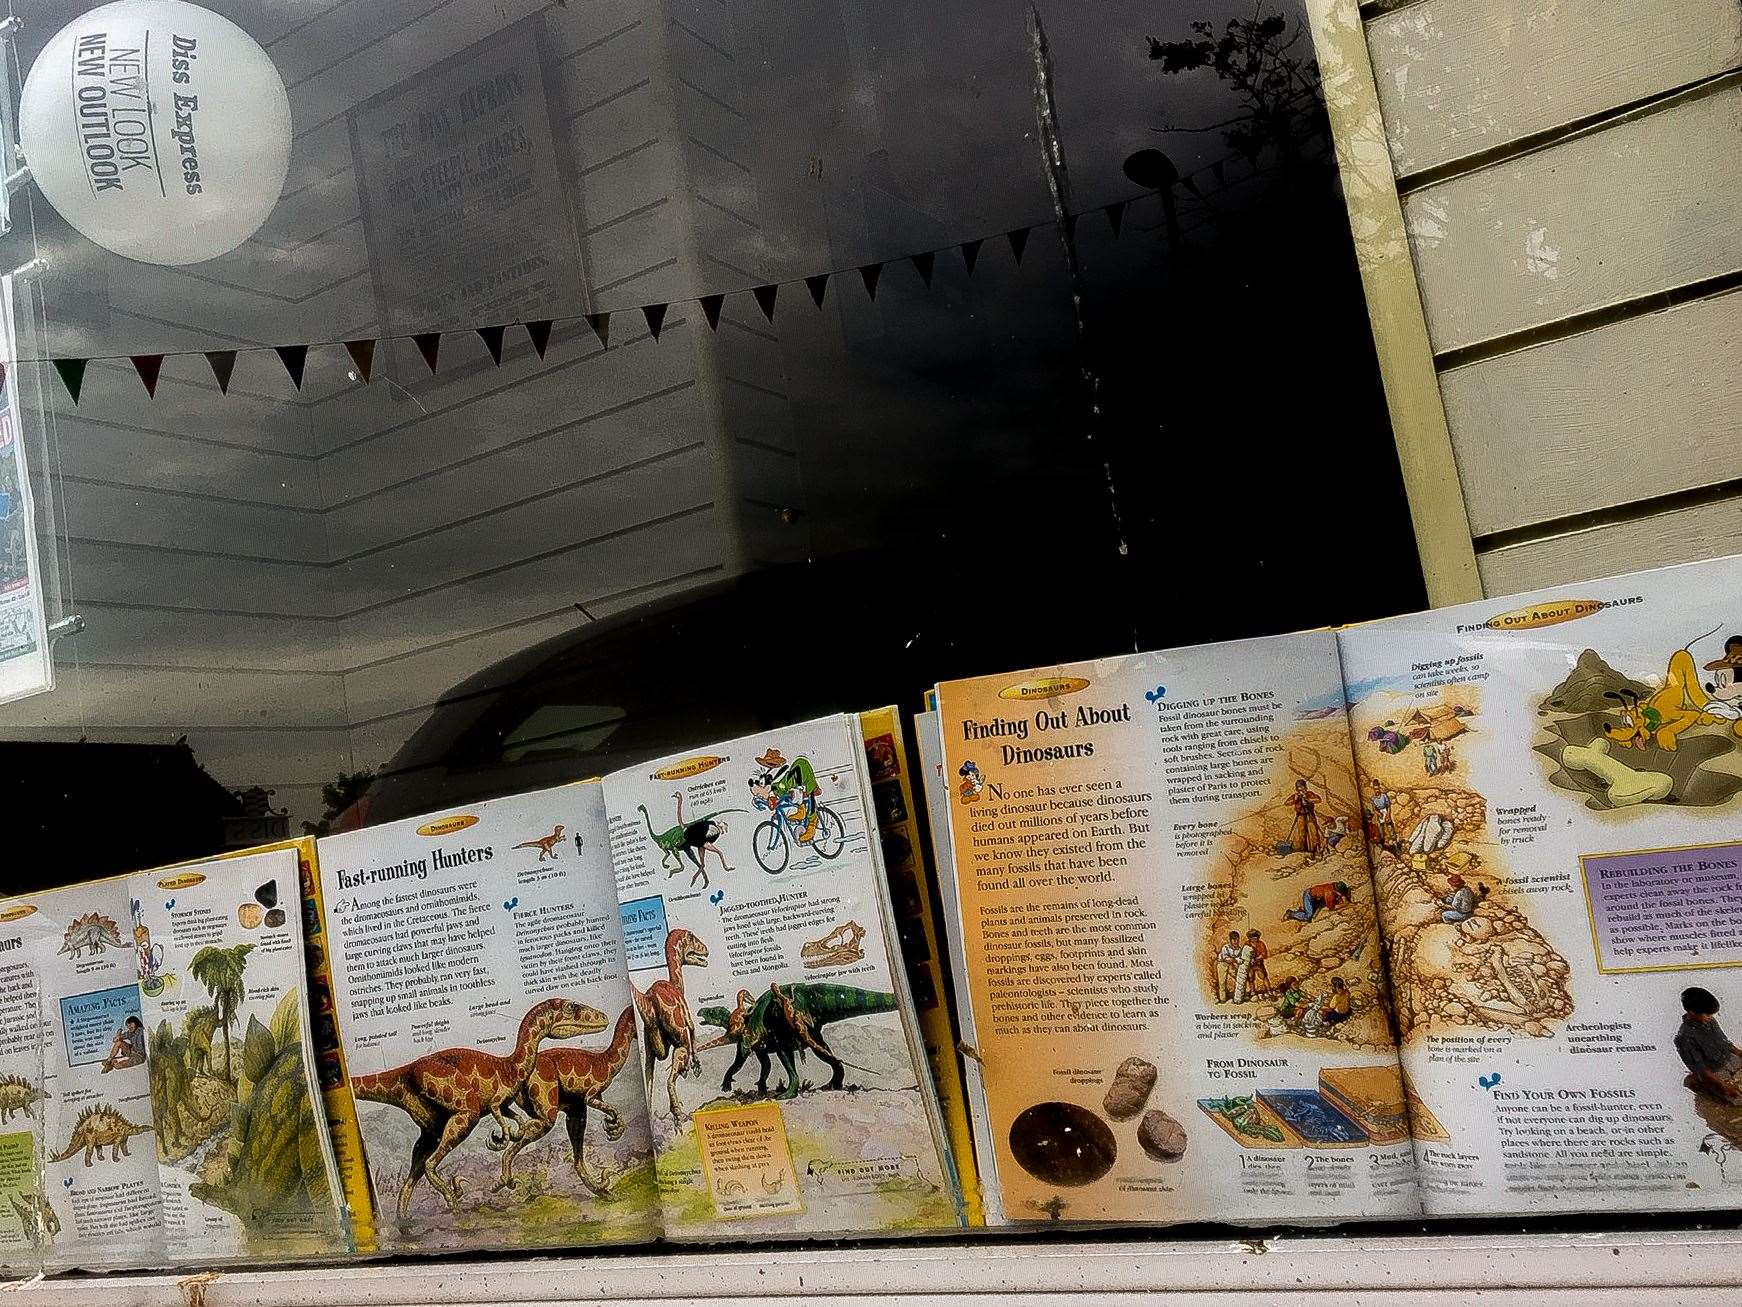 You can read all the latest news about dinosaurs in the front window of the Diss Express office on Mere Street